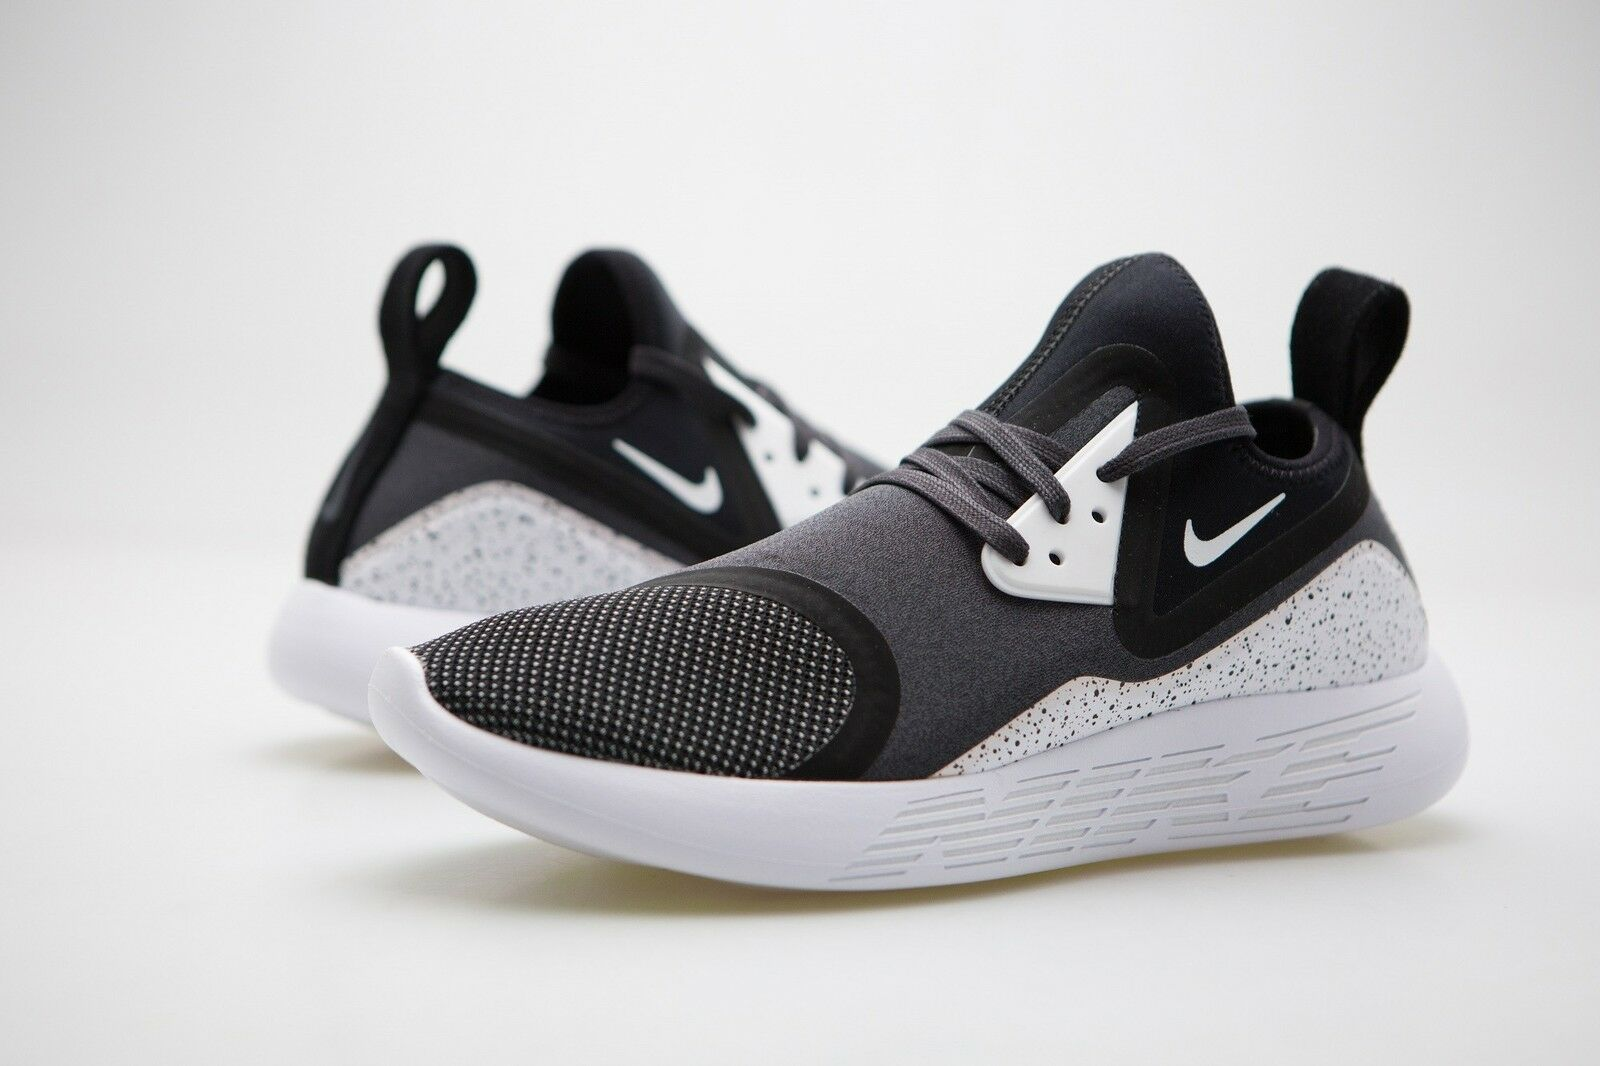 Nike lunarcharge Hombres lunarcharge Nike Premium le Negro Blanco faa28a